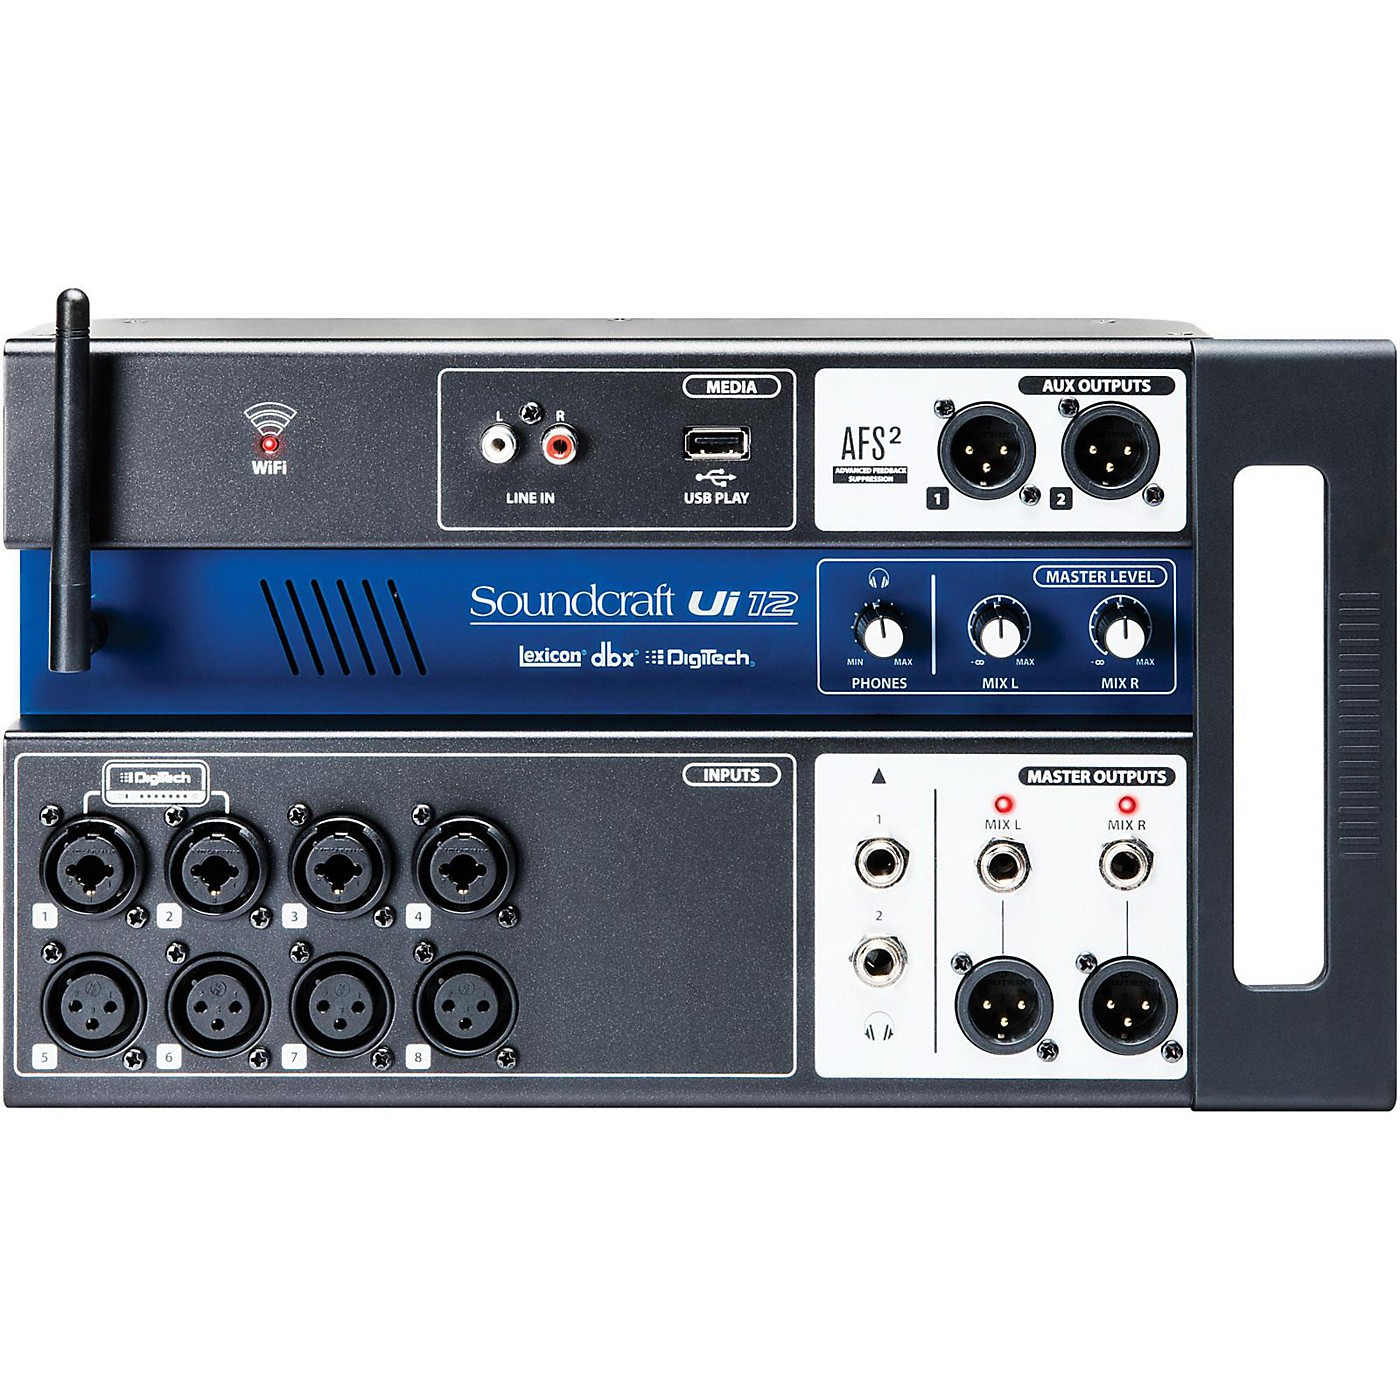 Soundcraft Ui12 Digital Mixer with Wi-Fi Router thumbnail